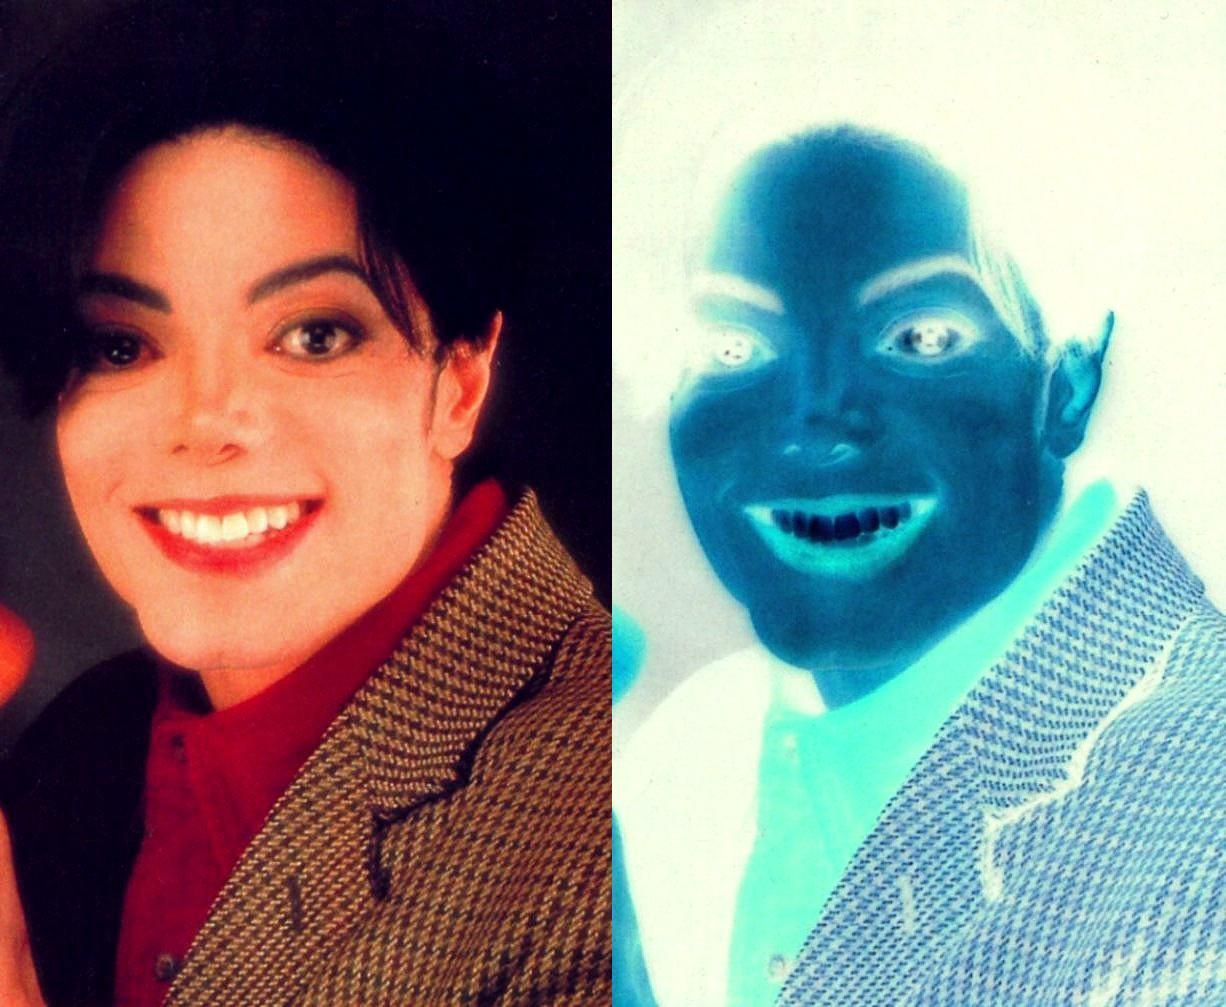 MJ - Awesome Inverted Colors